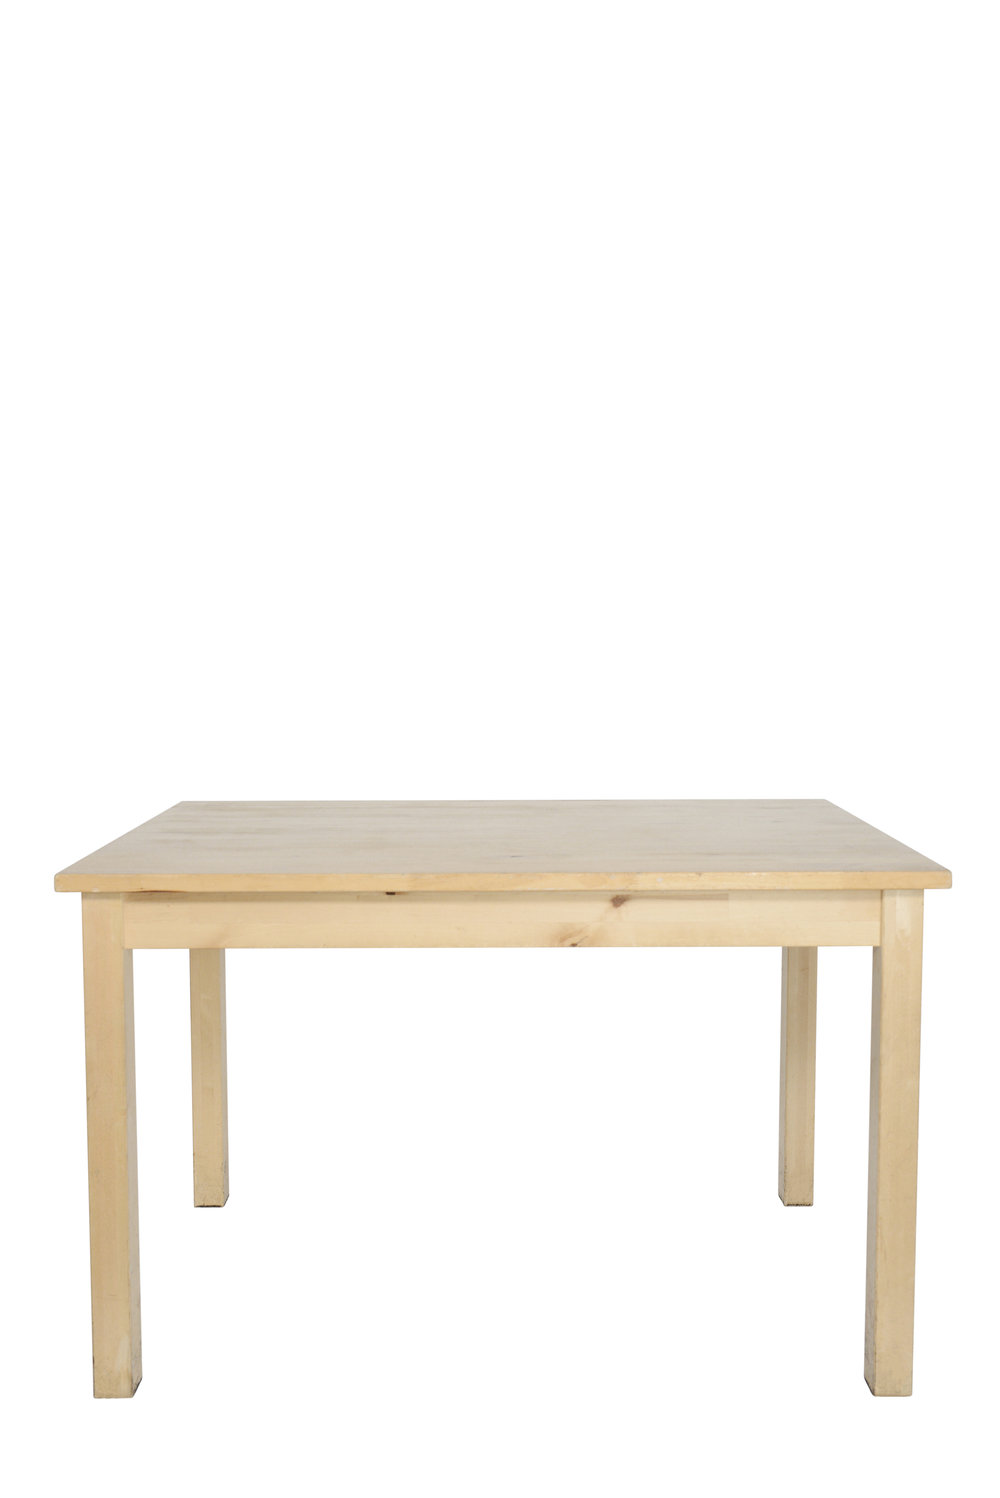 "47"" x 29"" birch tables qty. 3"